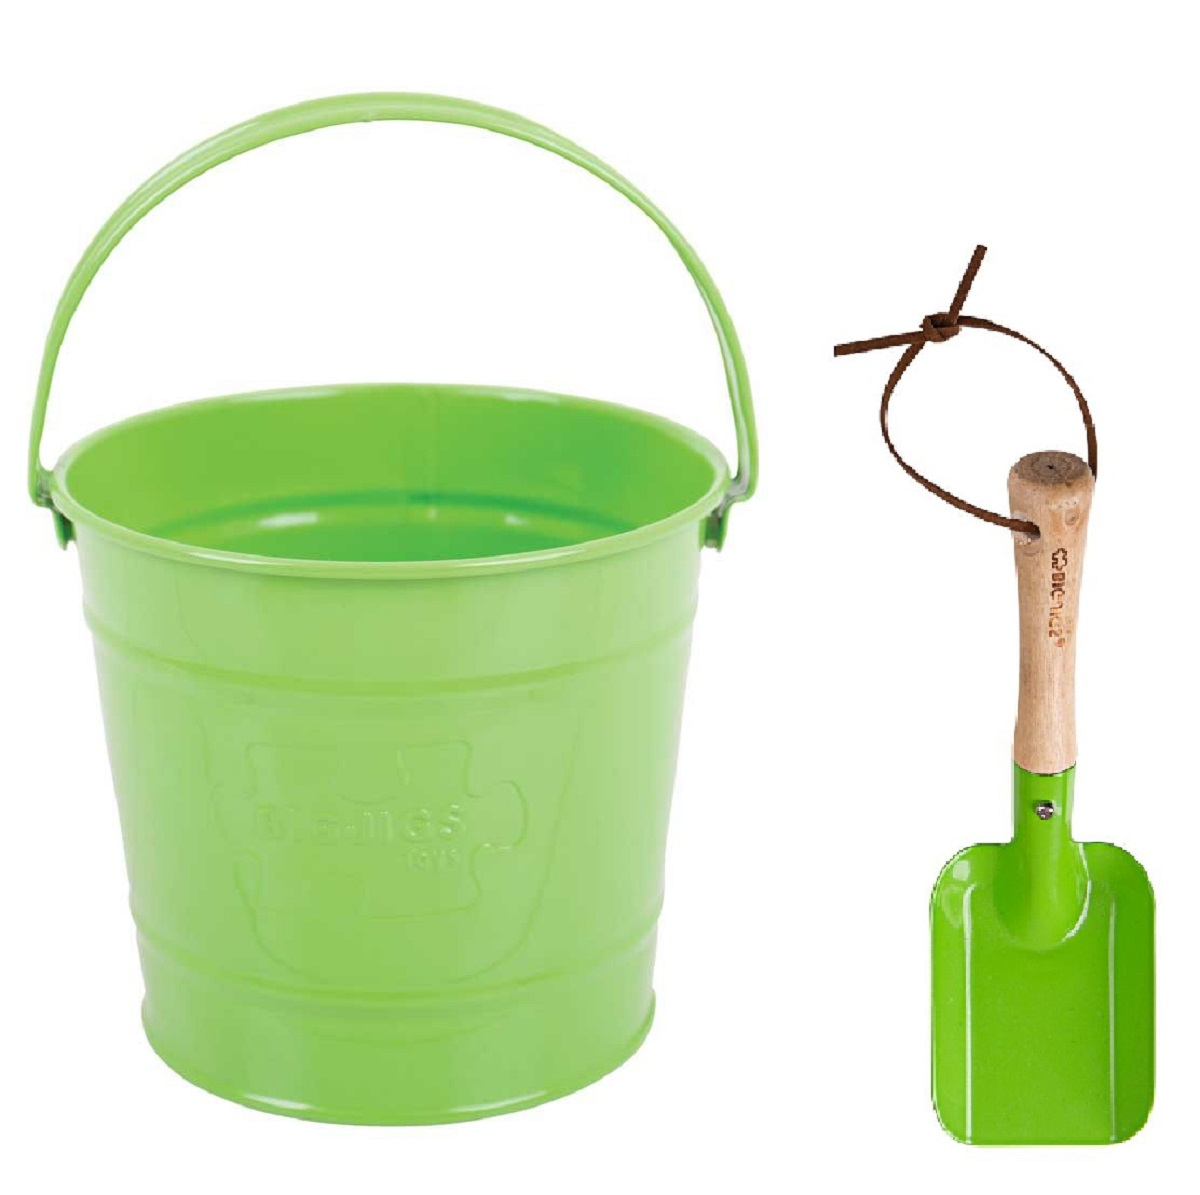 Childrens green bucket and trowel kit gardening tools for for Gardening tools toddlers